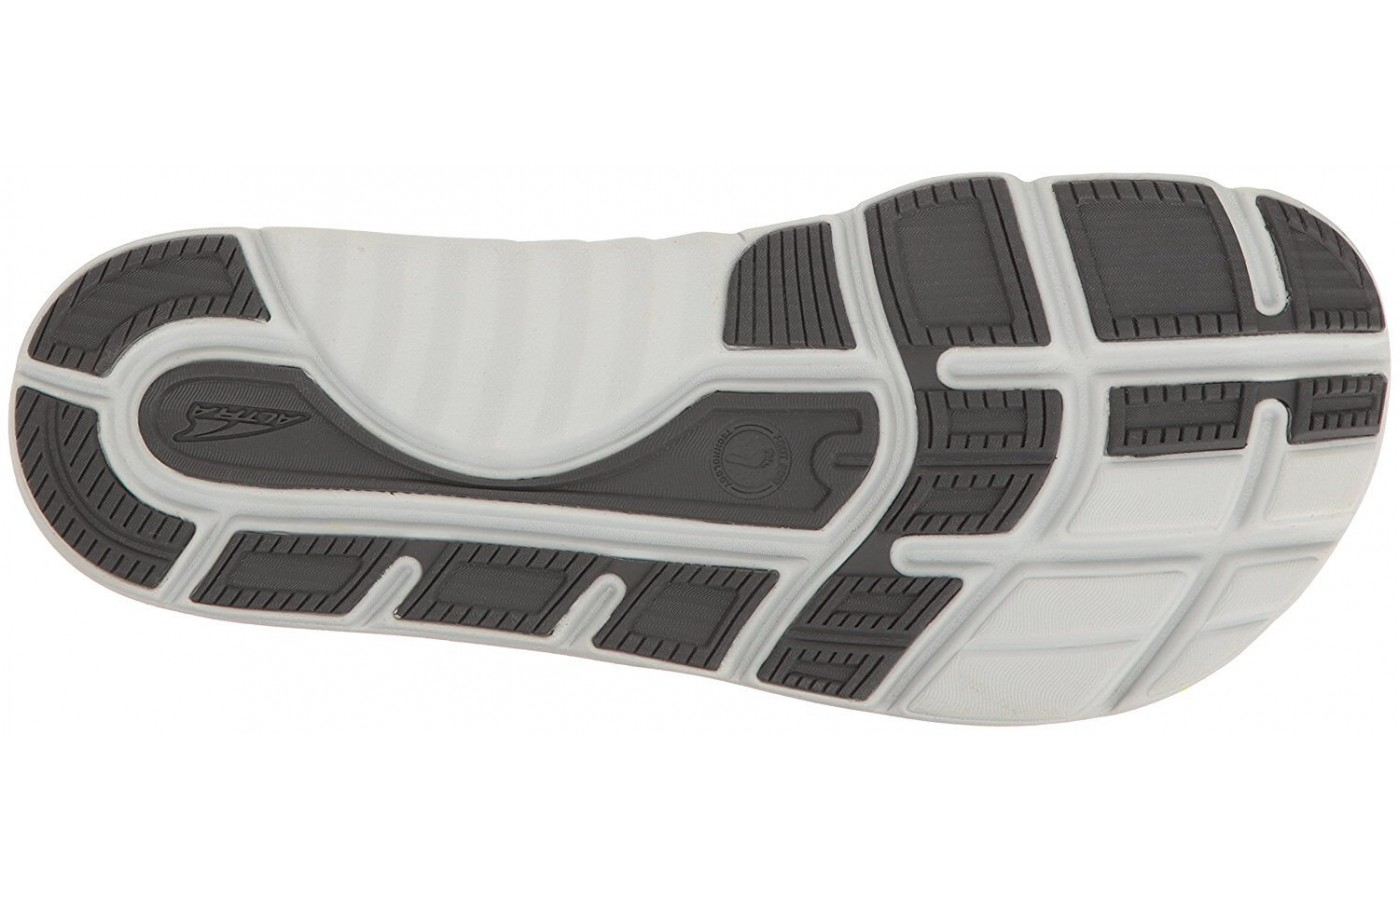 The Altra Torin 3.0 has a FootPod outsole